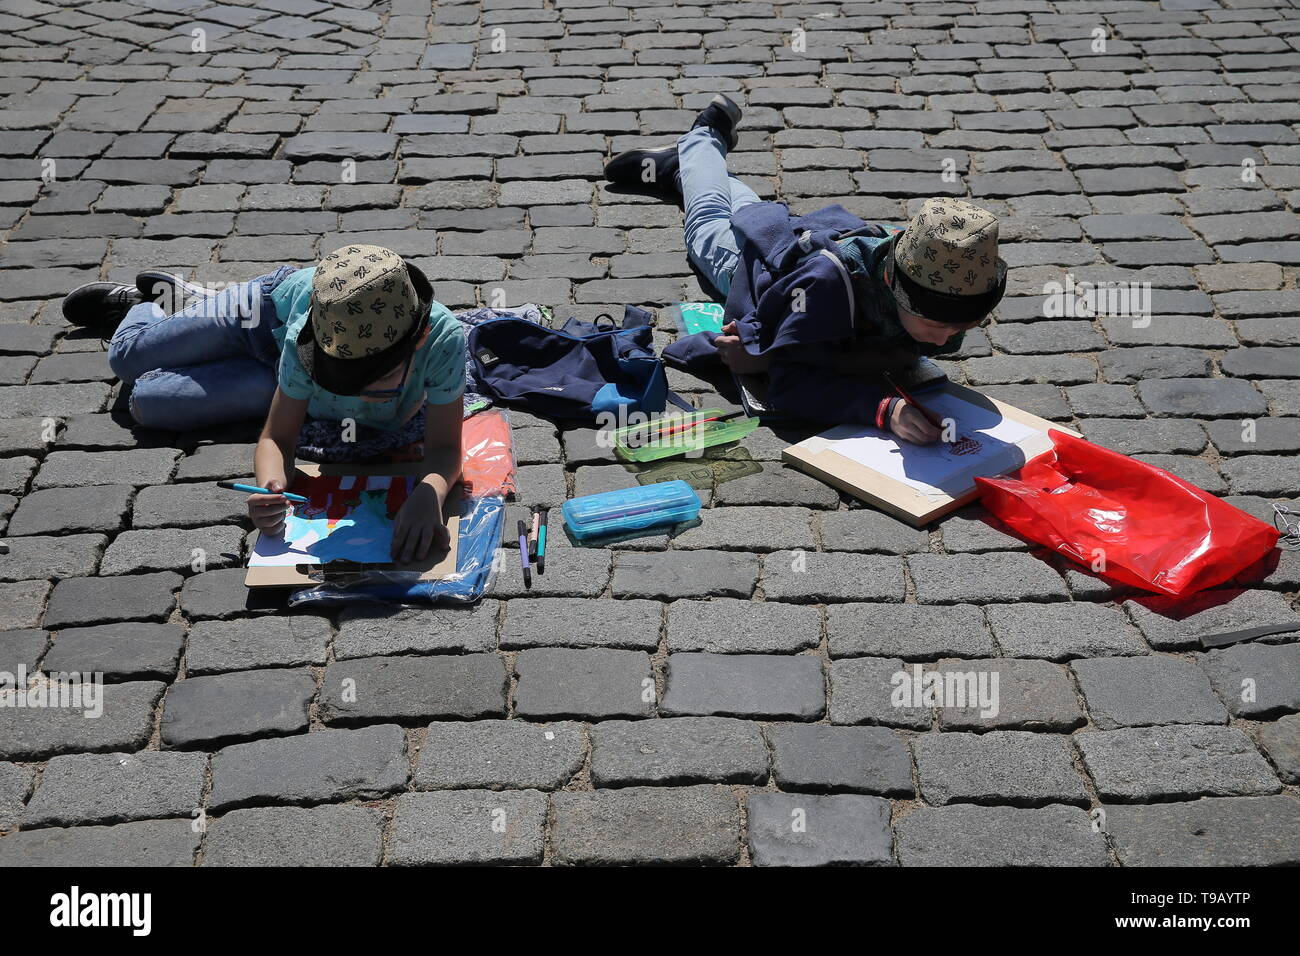 Moscow, Russia. 18th May, 2019. MOSCOW, RUSSIA - MAY 18, 2019: People during the 9th Draw St Basil's Cathedral art festival in Red Square. Gavriil Grigorov/TASS Credit: ITAR-TASS News Agency/Alamy Live News - Stock Image